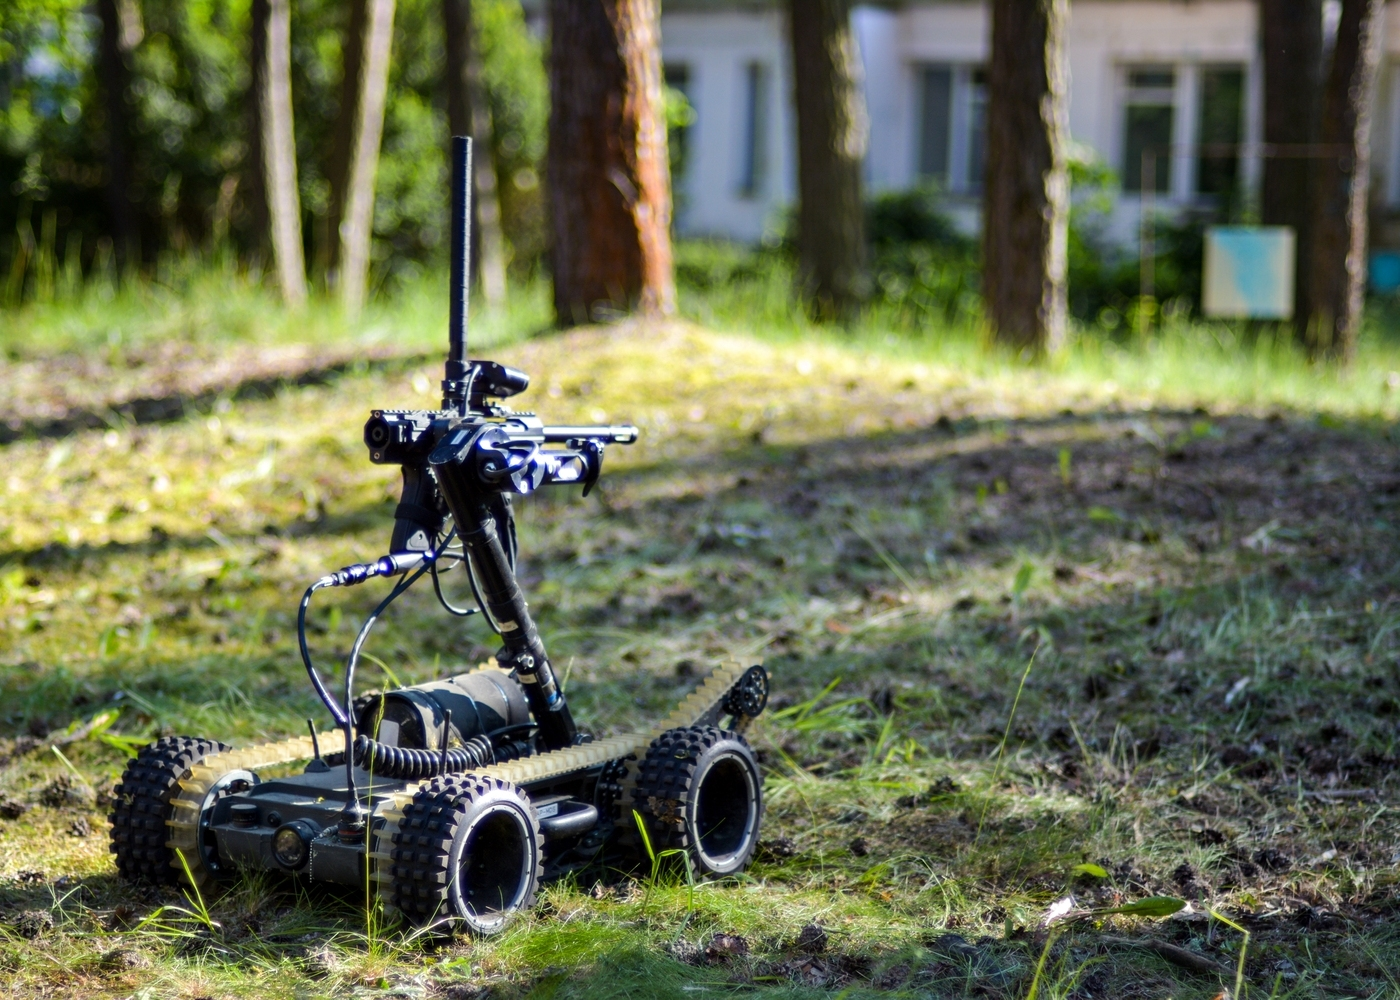 Paintball Shooting Competition using PIAP Scout robots (photo: PIAP)